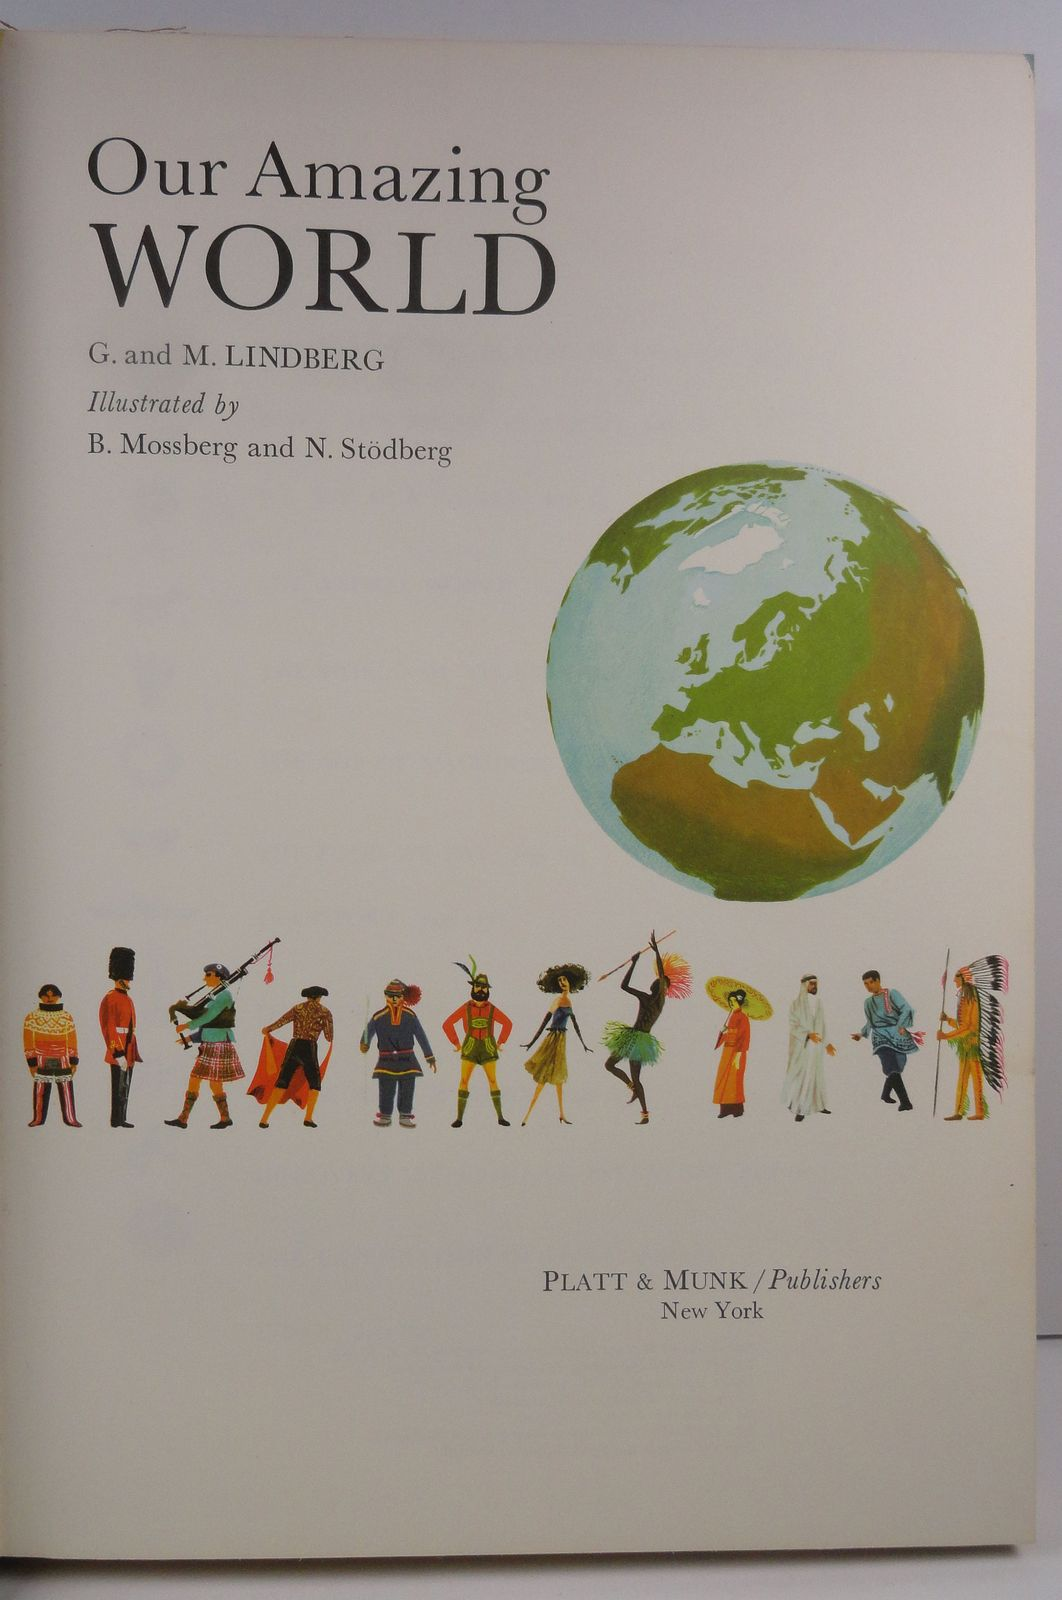 Our Amazing World by G. and M. Lindberg 1968 Platt and Munk